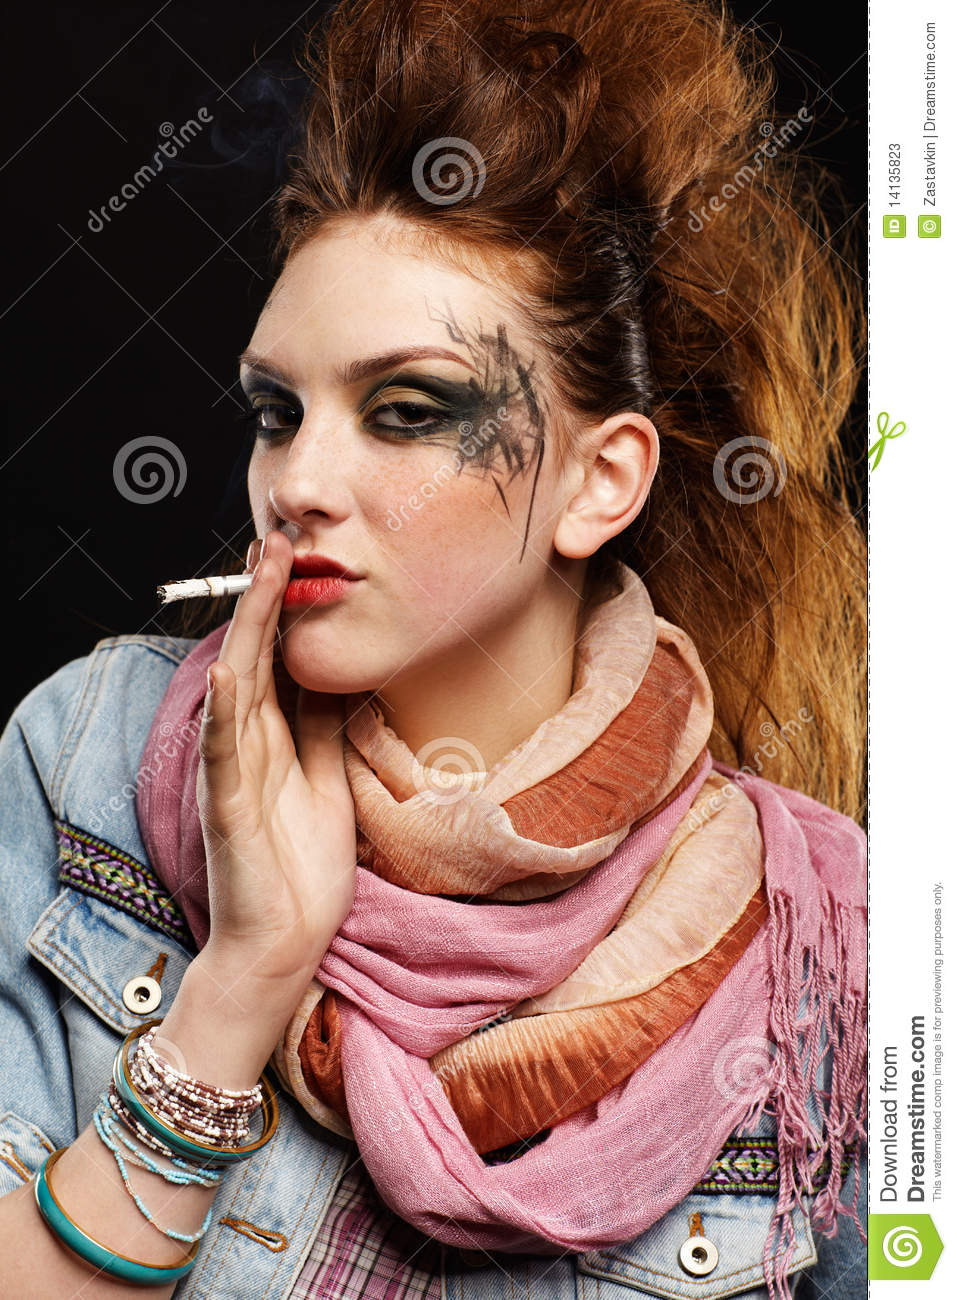 Glam Punk Girl Smoking Stock Image Image Of Hand 80th